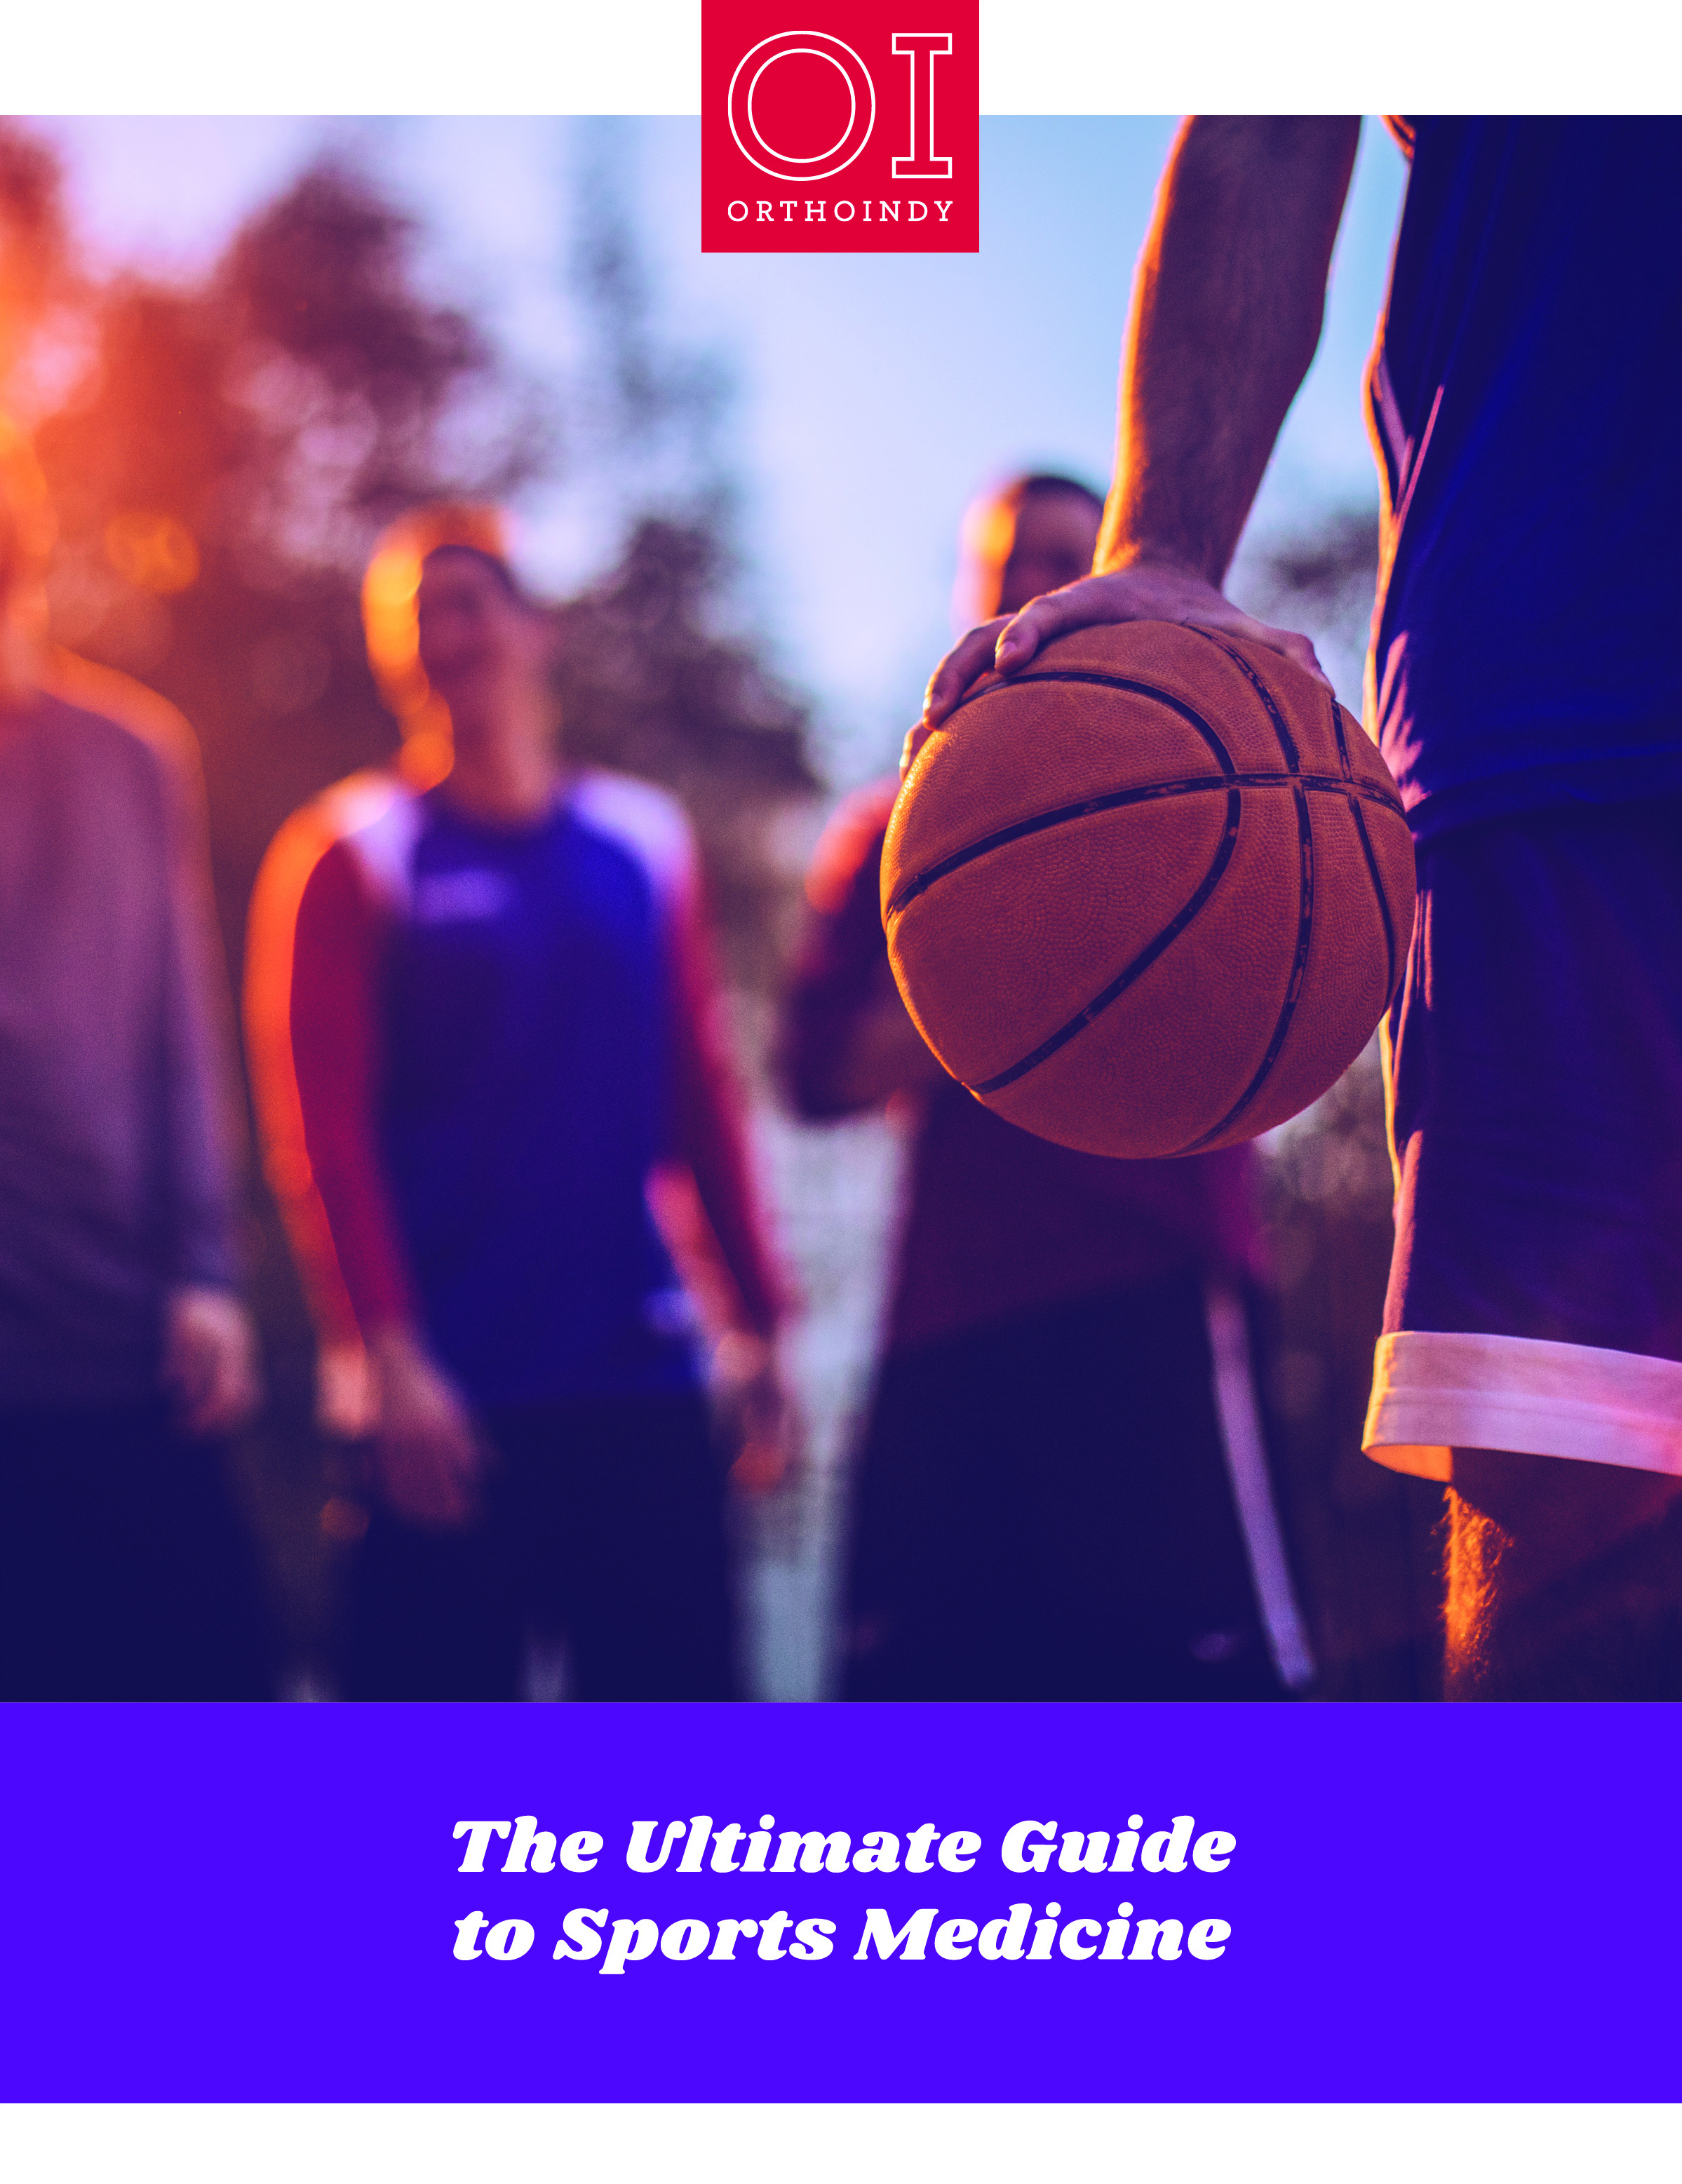 The ultimate guide to sports medicine